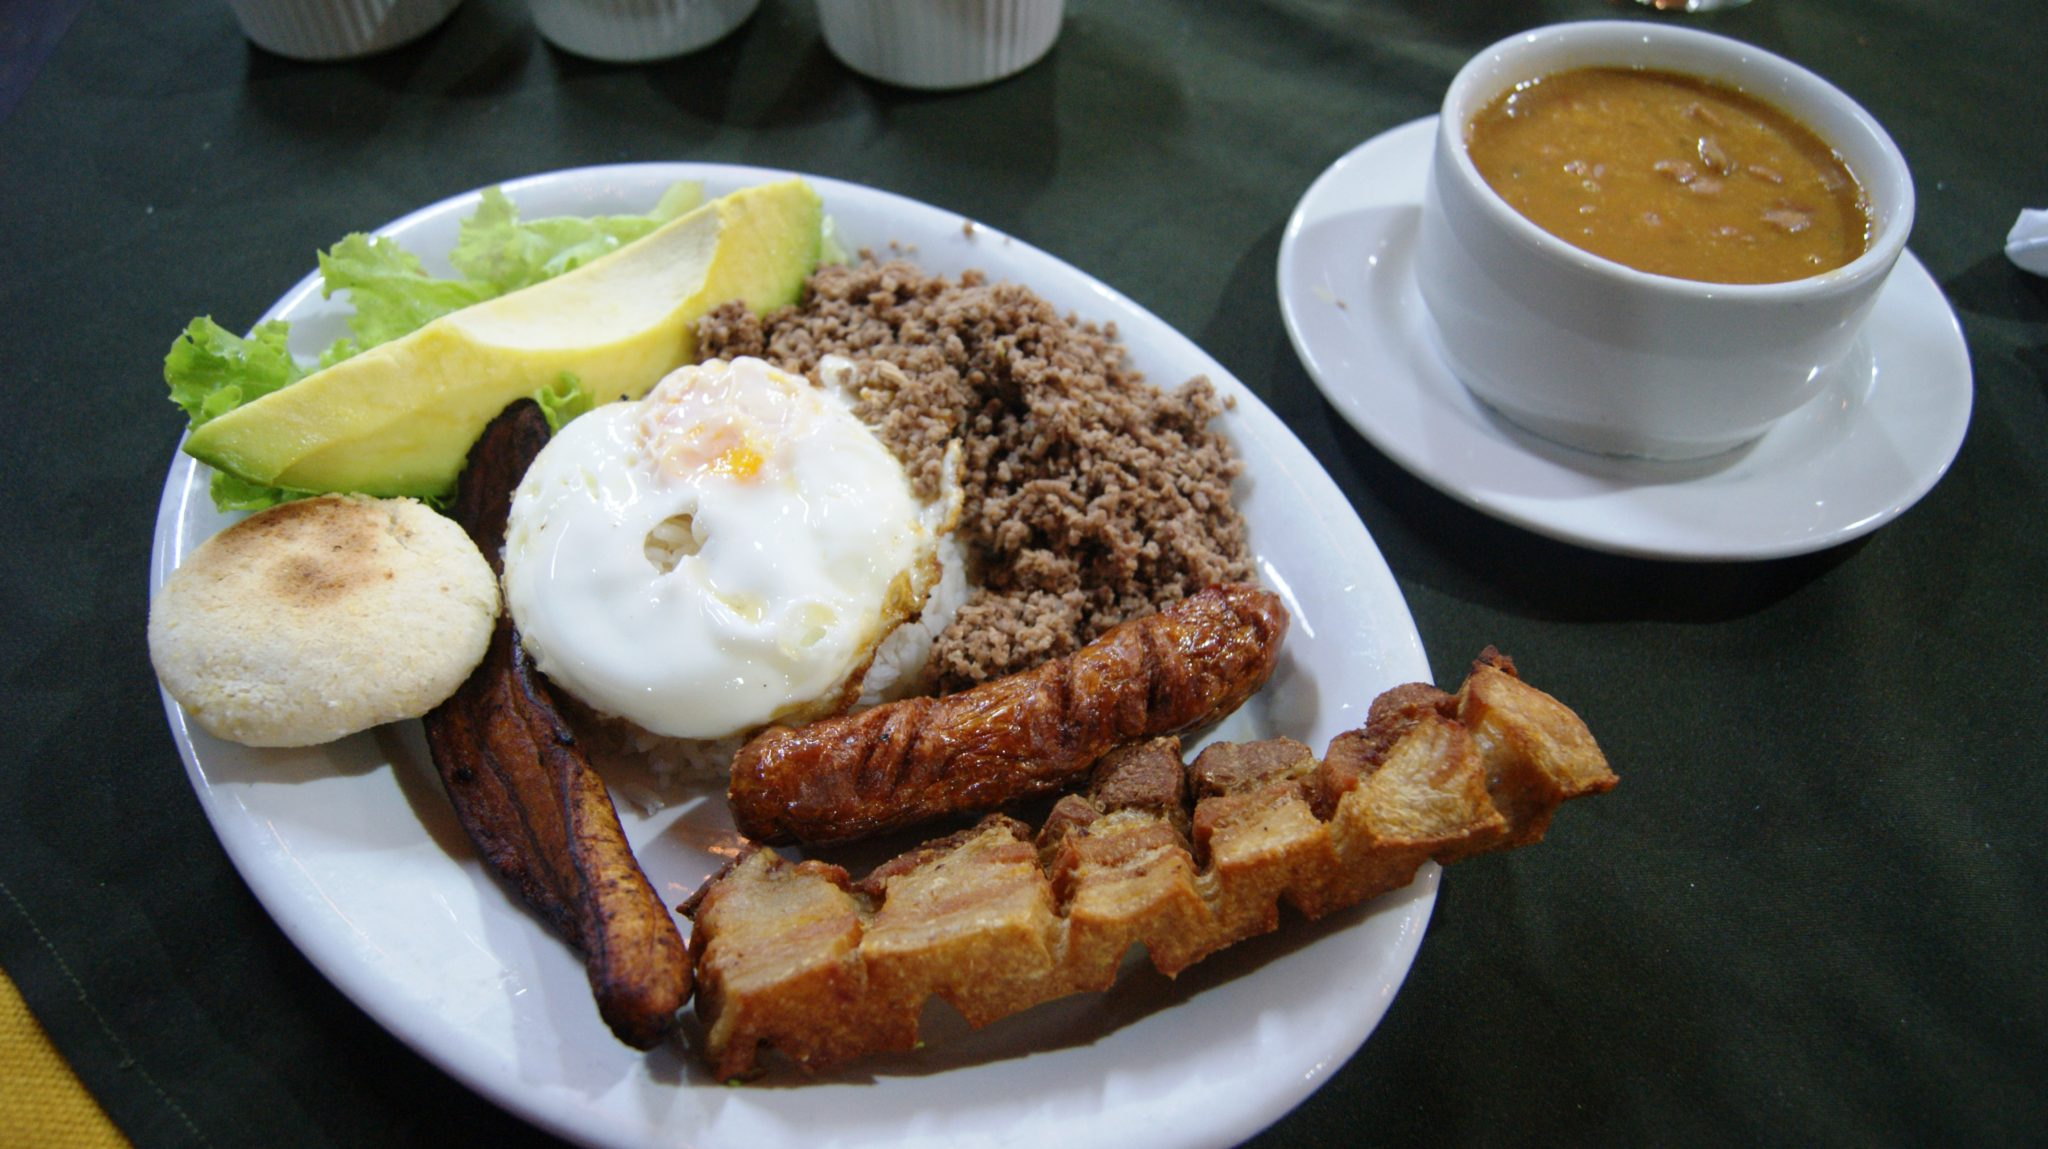 This is an image of the national dish, the Bandeja Paisa.